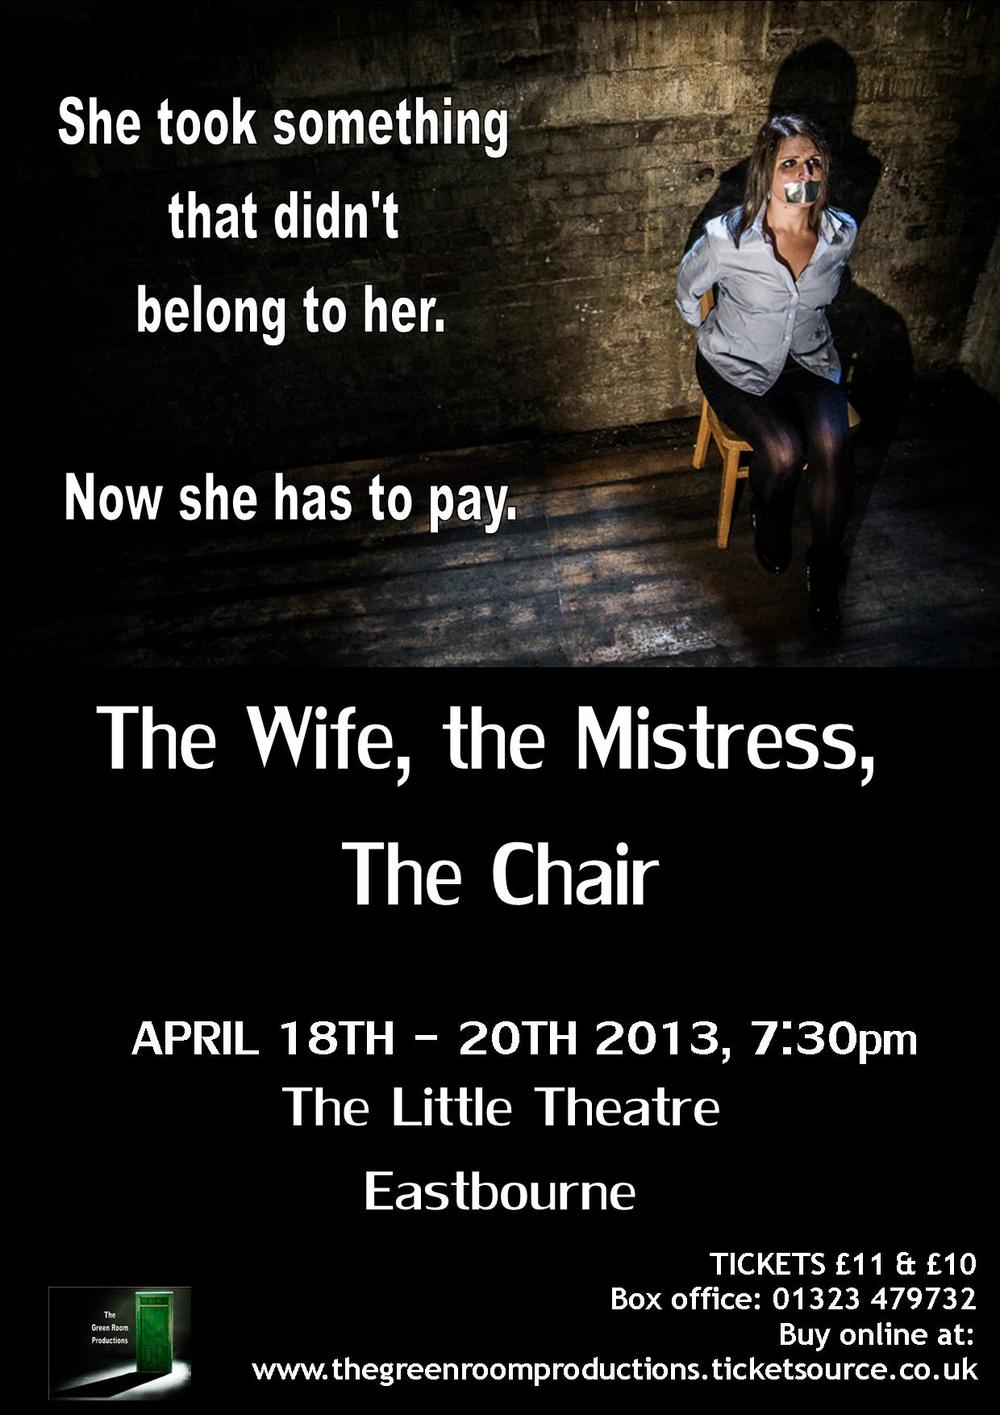 The Wife, The Mistress, The Chair